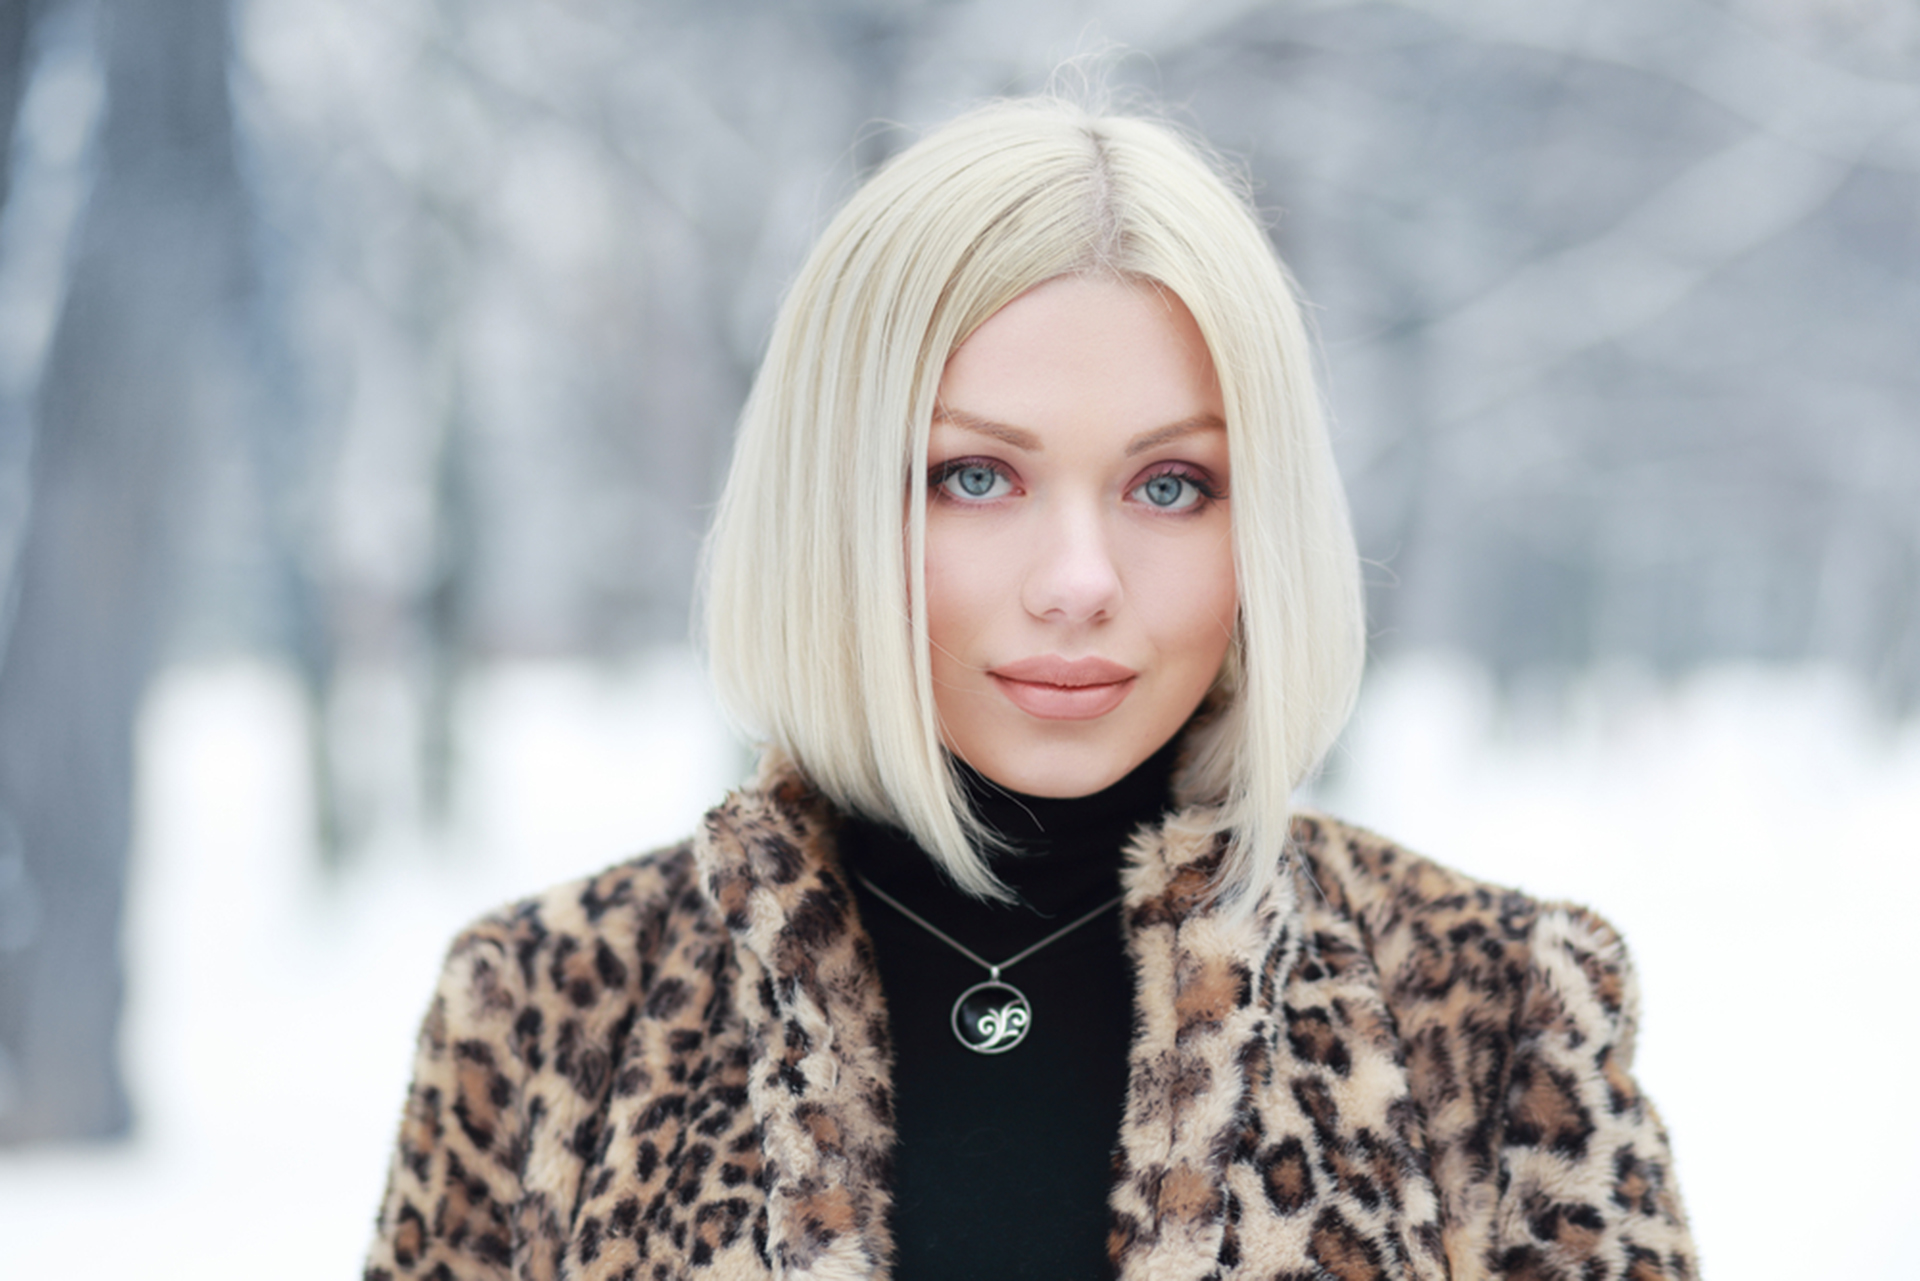 Short platinum blonde wig.JPG